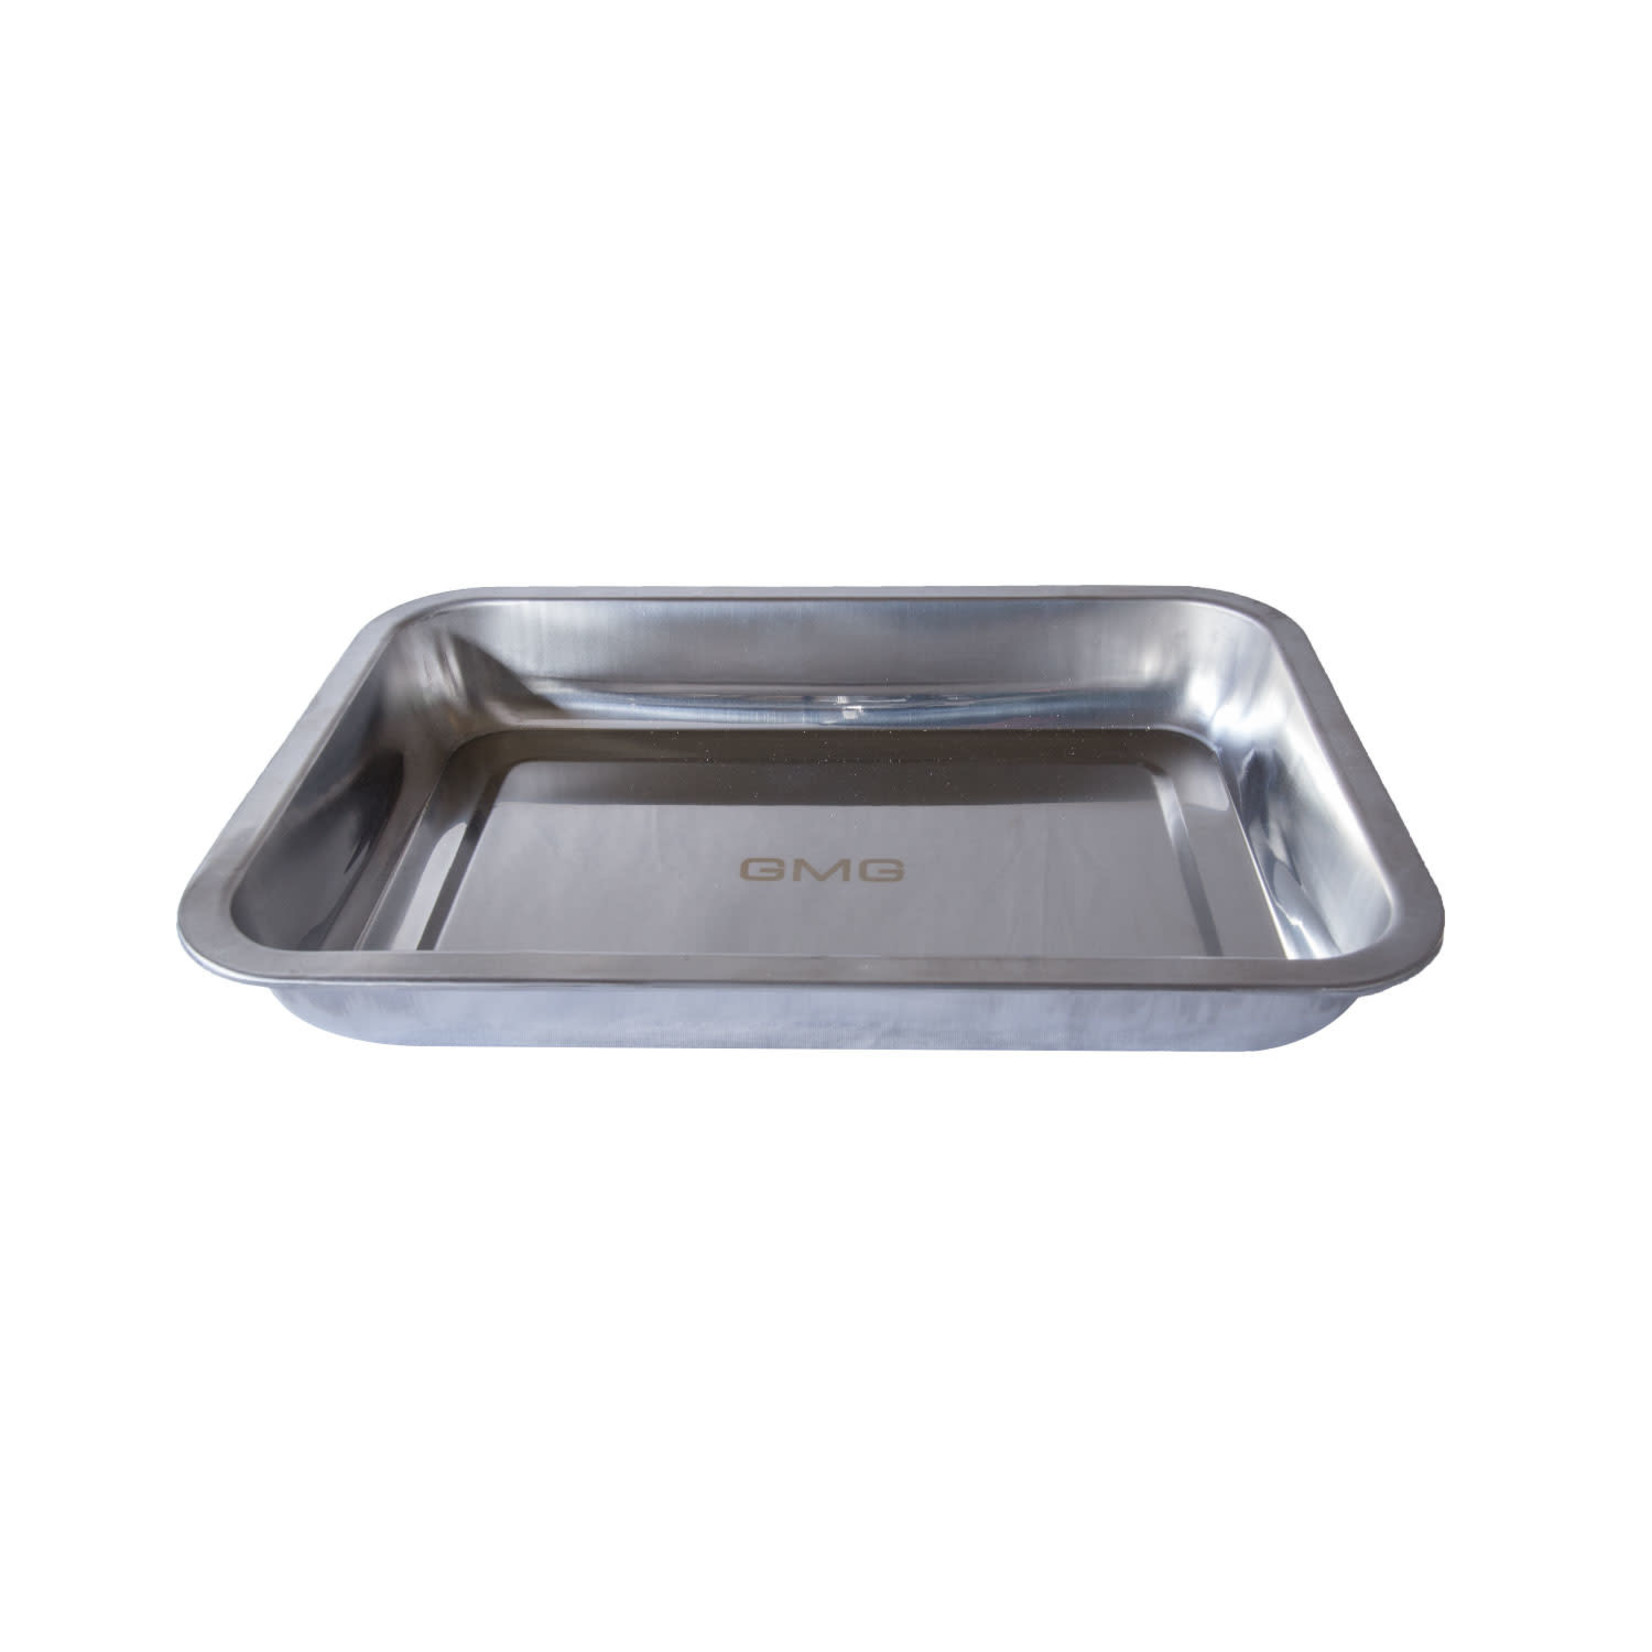 Green Mountain Grill GMG ovenschaal RVS 30x22x4 cm